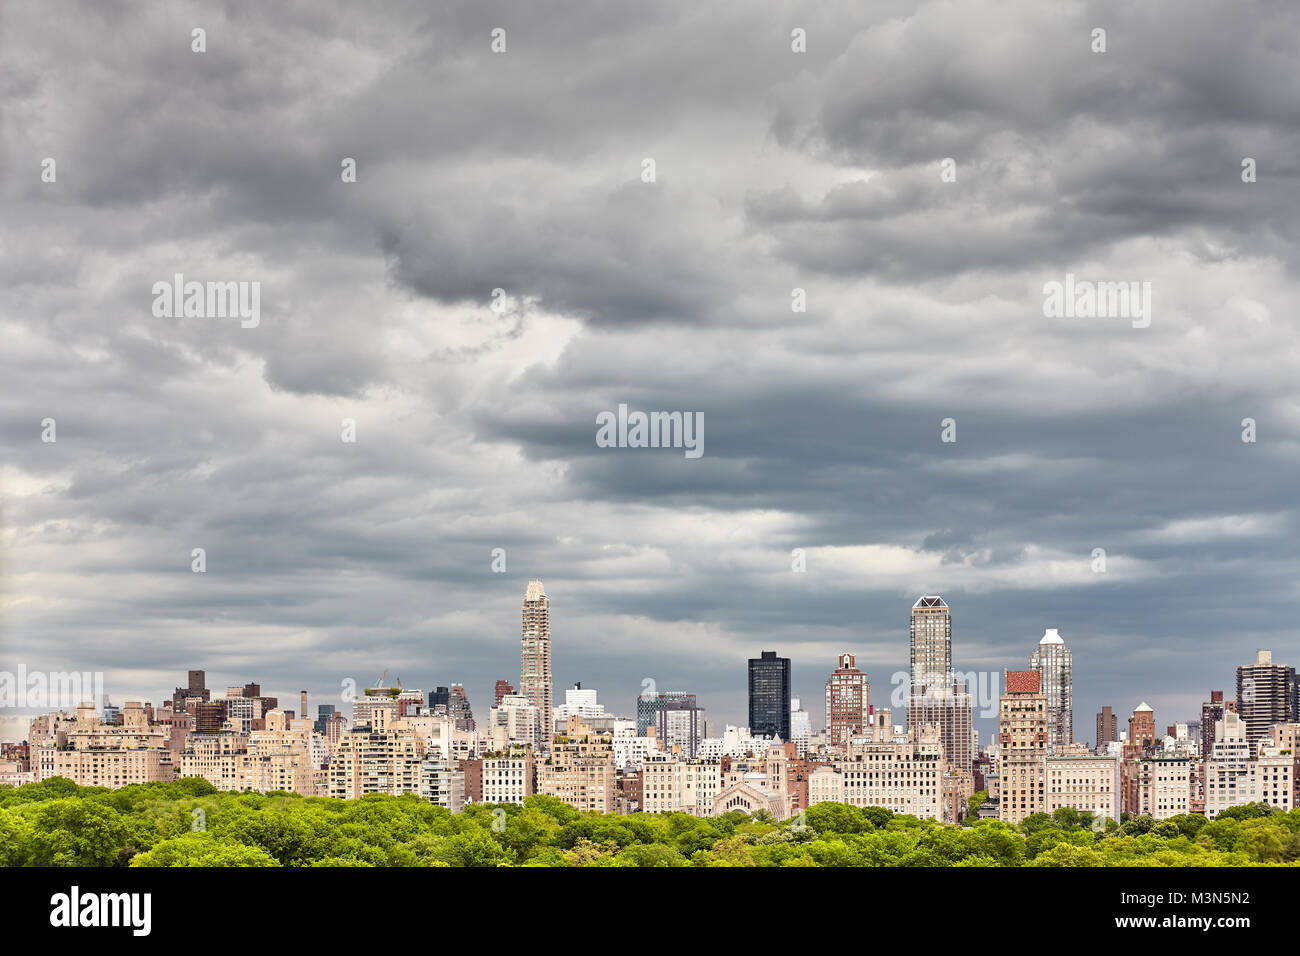 Stormy cloudscape over Manhattan skyline, New York City, USA. - Stock Image